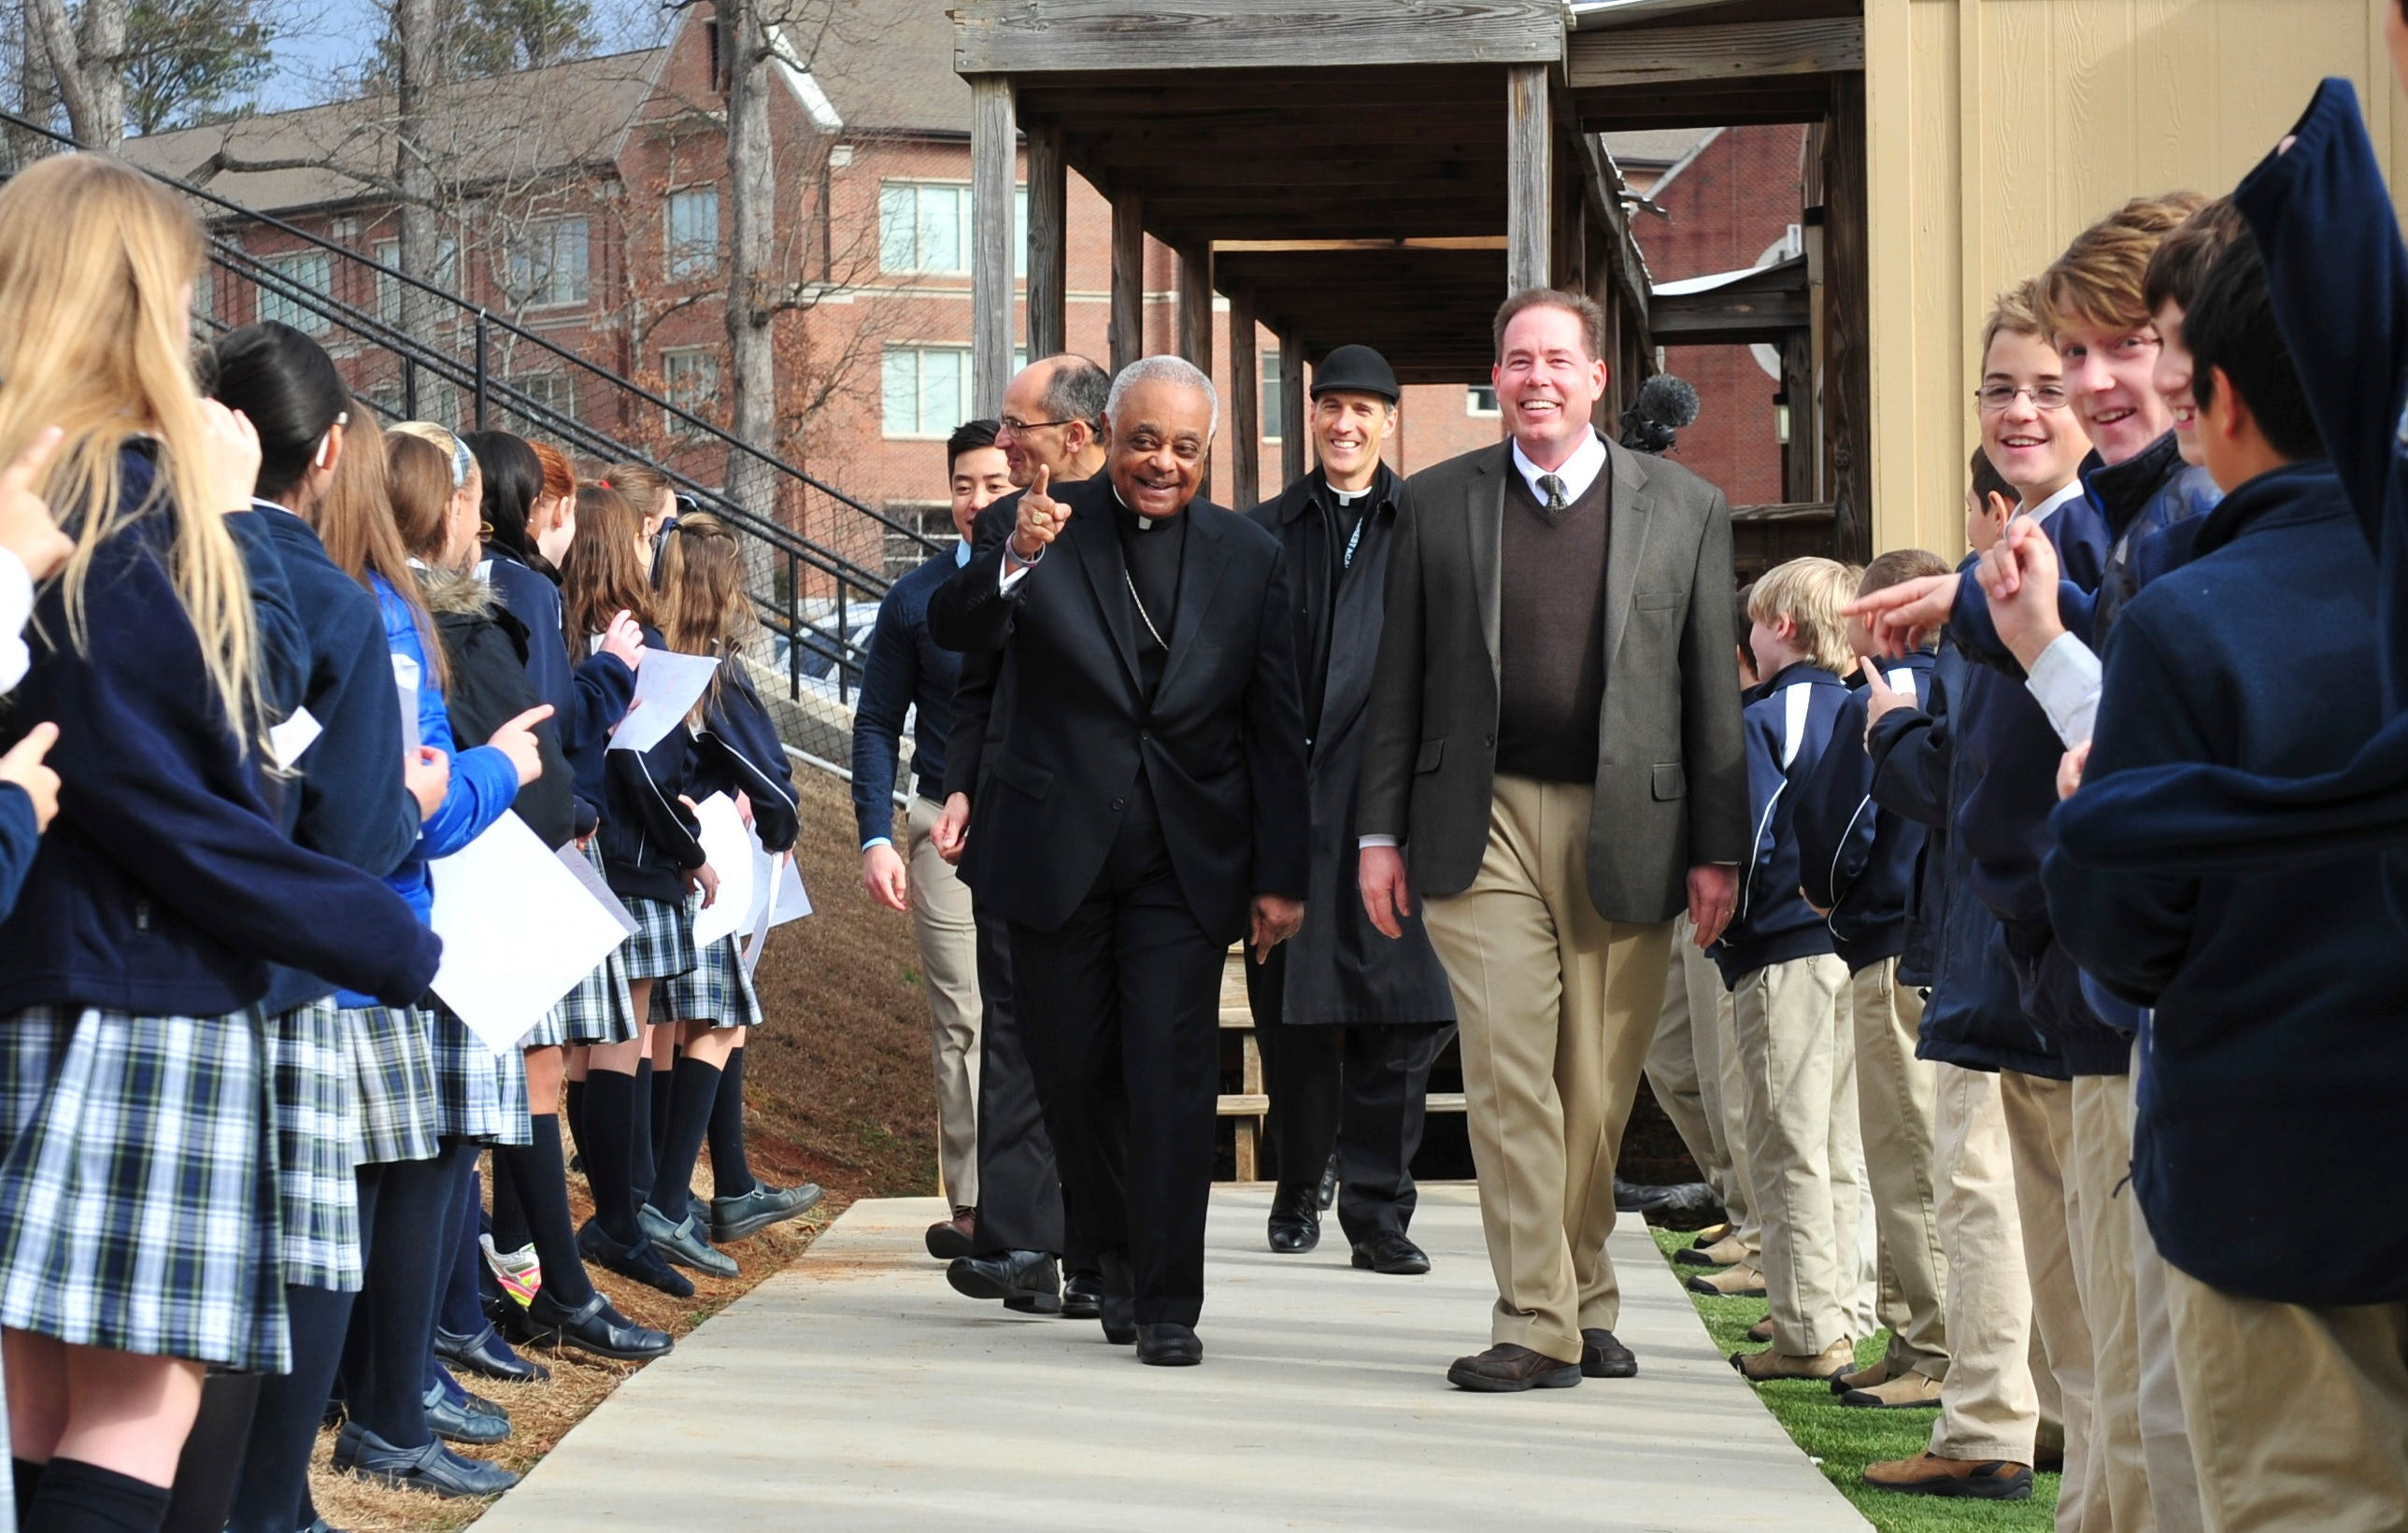 Archbishop Gregory Visits Pinecrest Academy for Founders Day Events